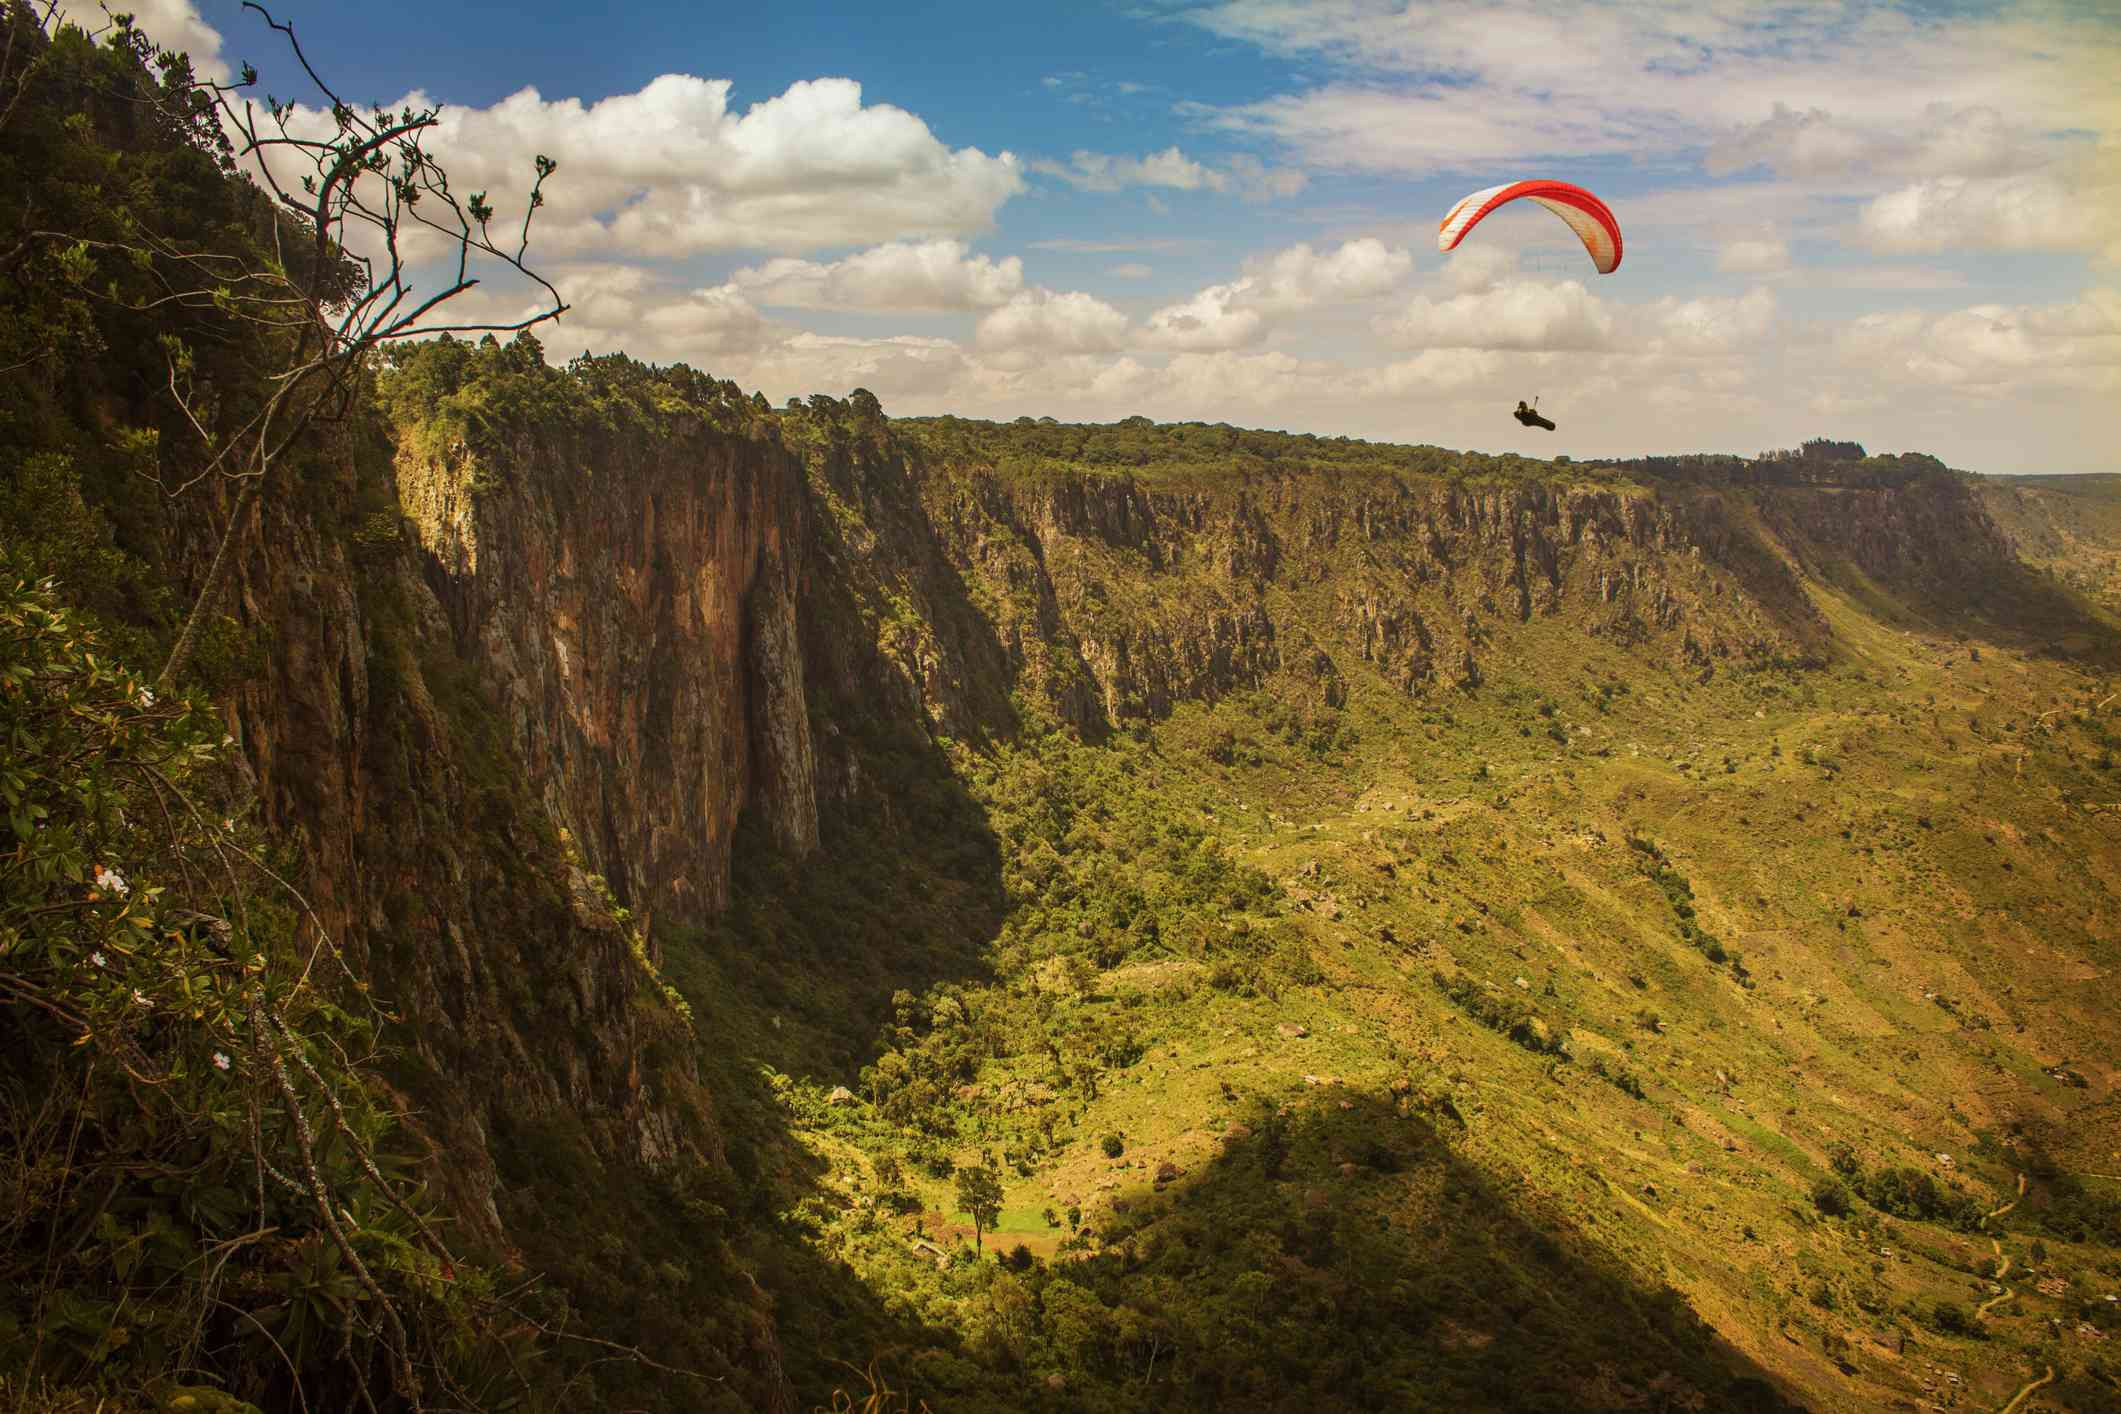 forested cliffs with paraglider in the sky